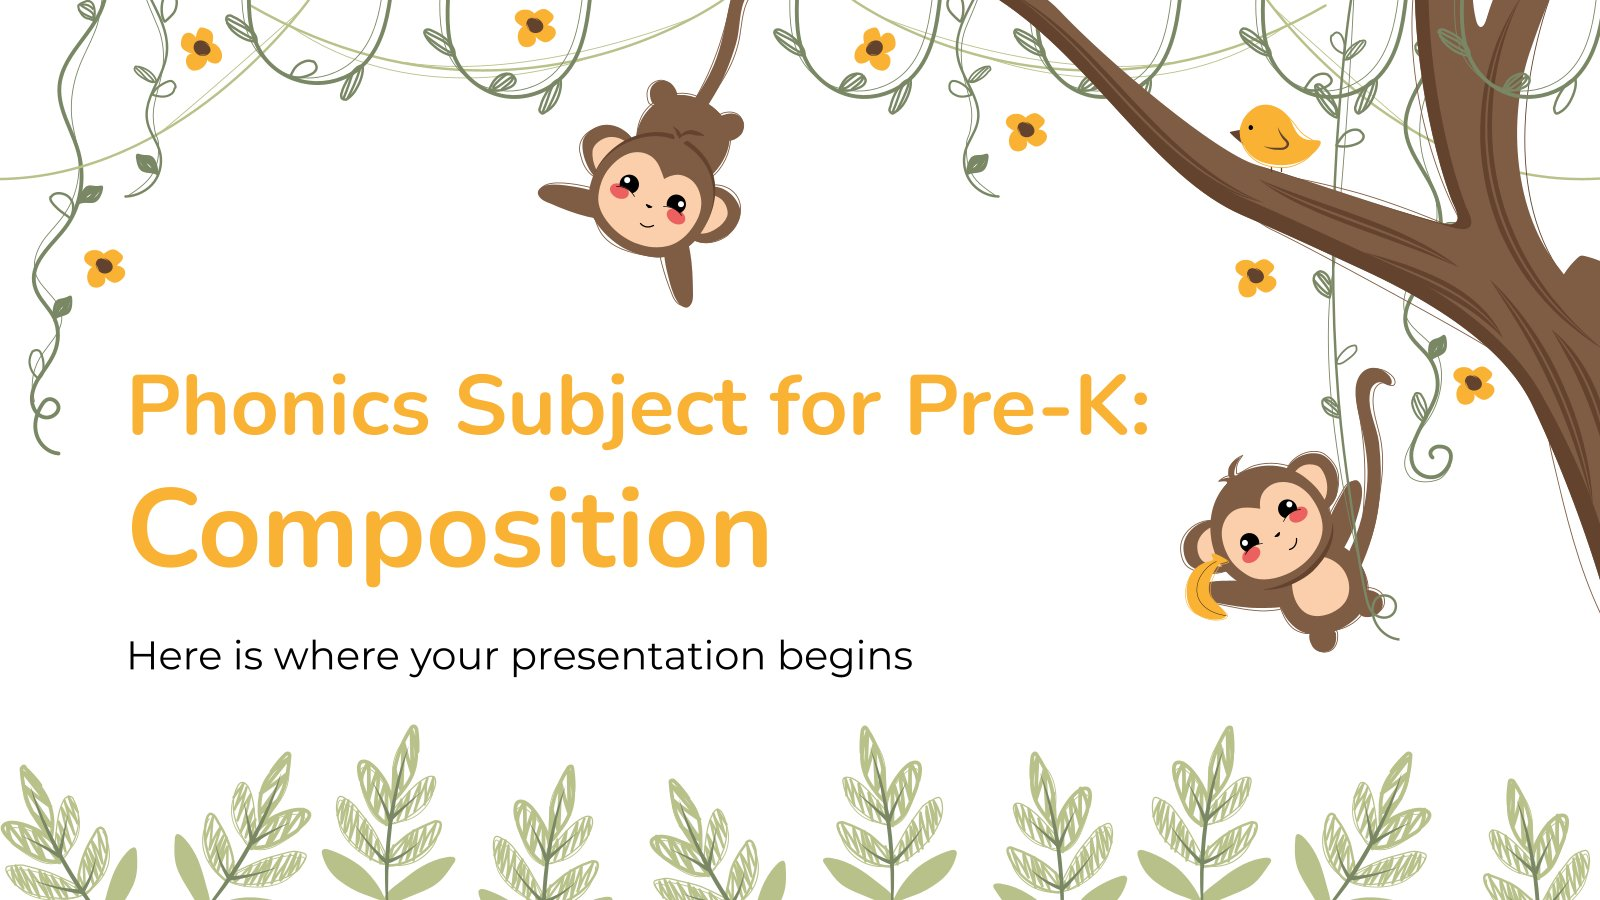 Phonics Subject for Pre-K: Composition presentation template